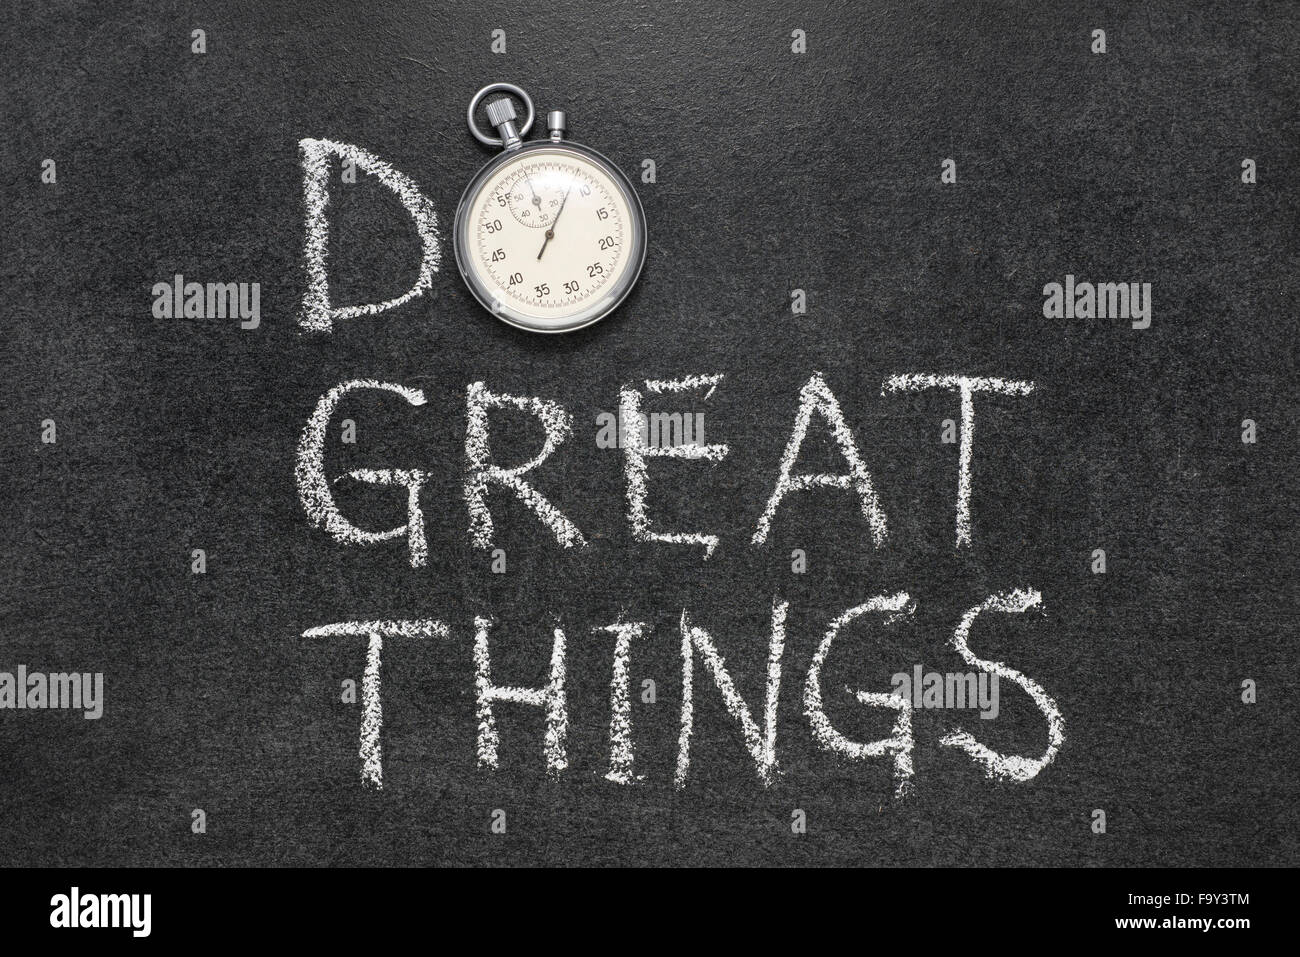 do great things phrase handwritten on chalkboard with vintage precise stopwatch used instead of O Stock Photo